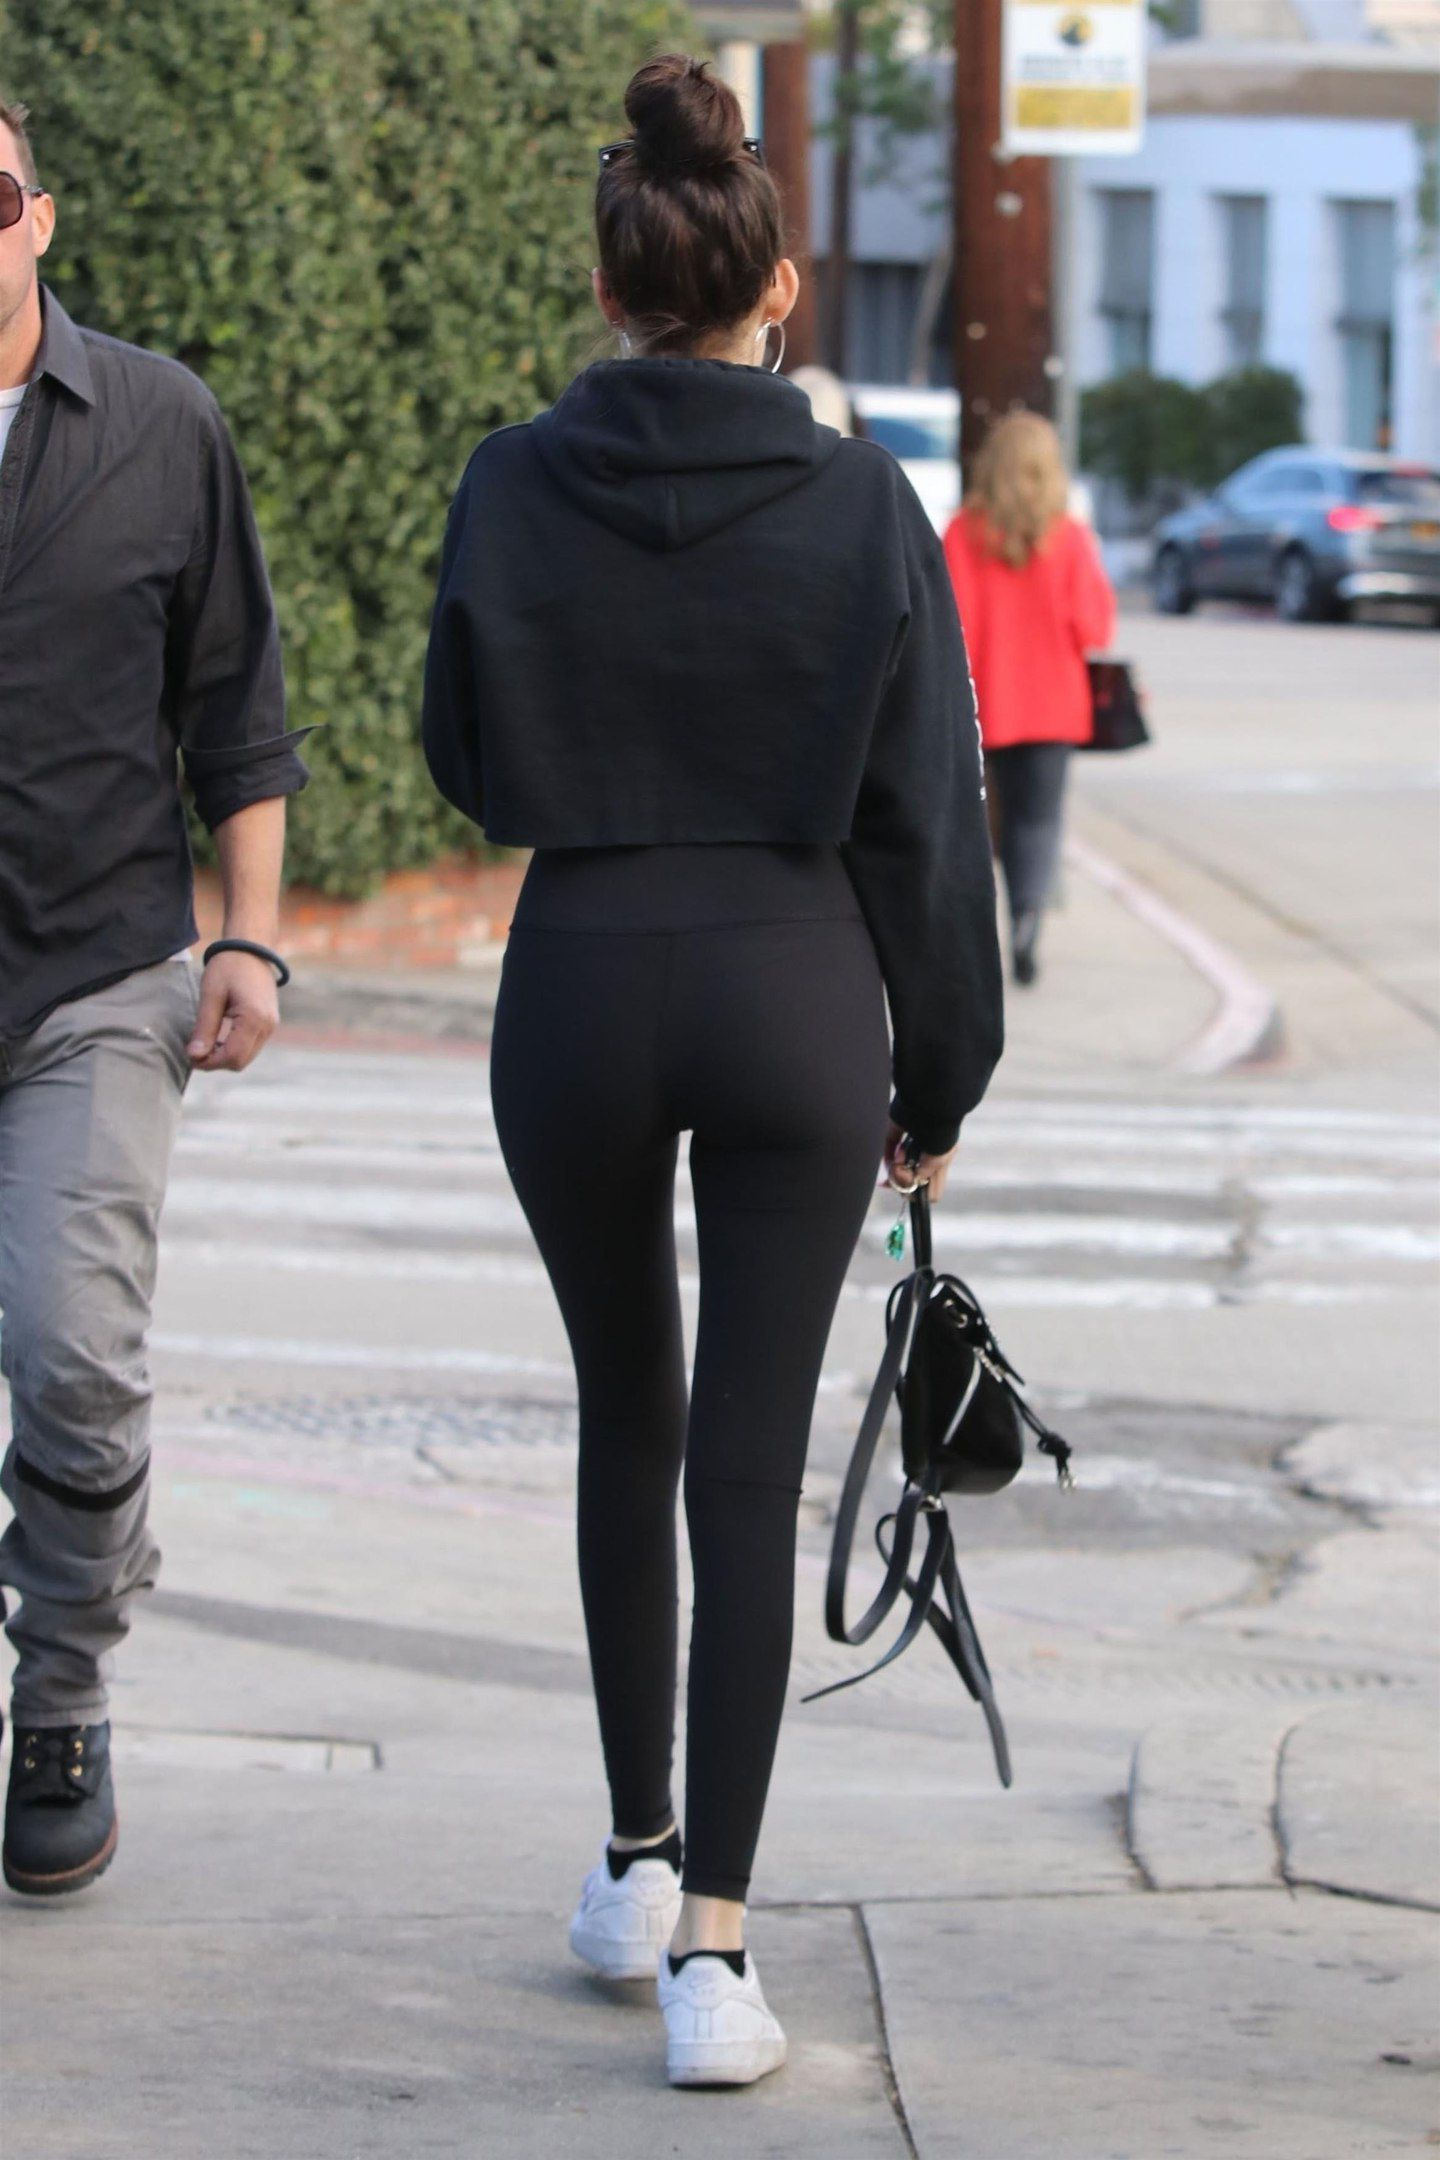 madison-beer-cameltoe-while-out-for-lunch-in-west-hollywood-1665